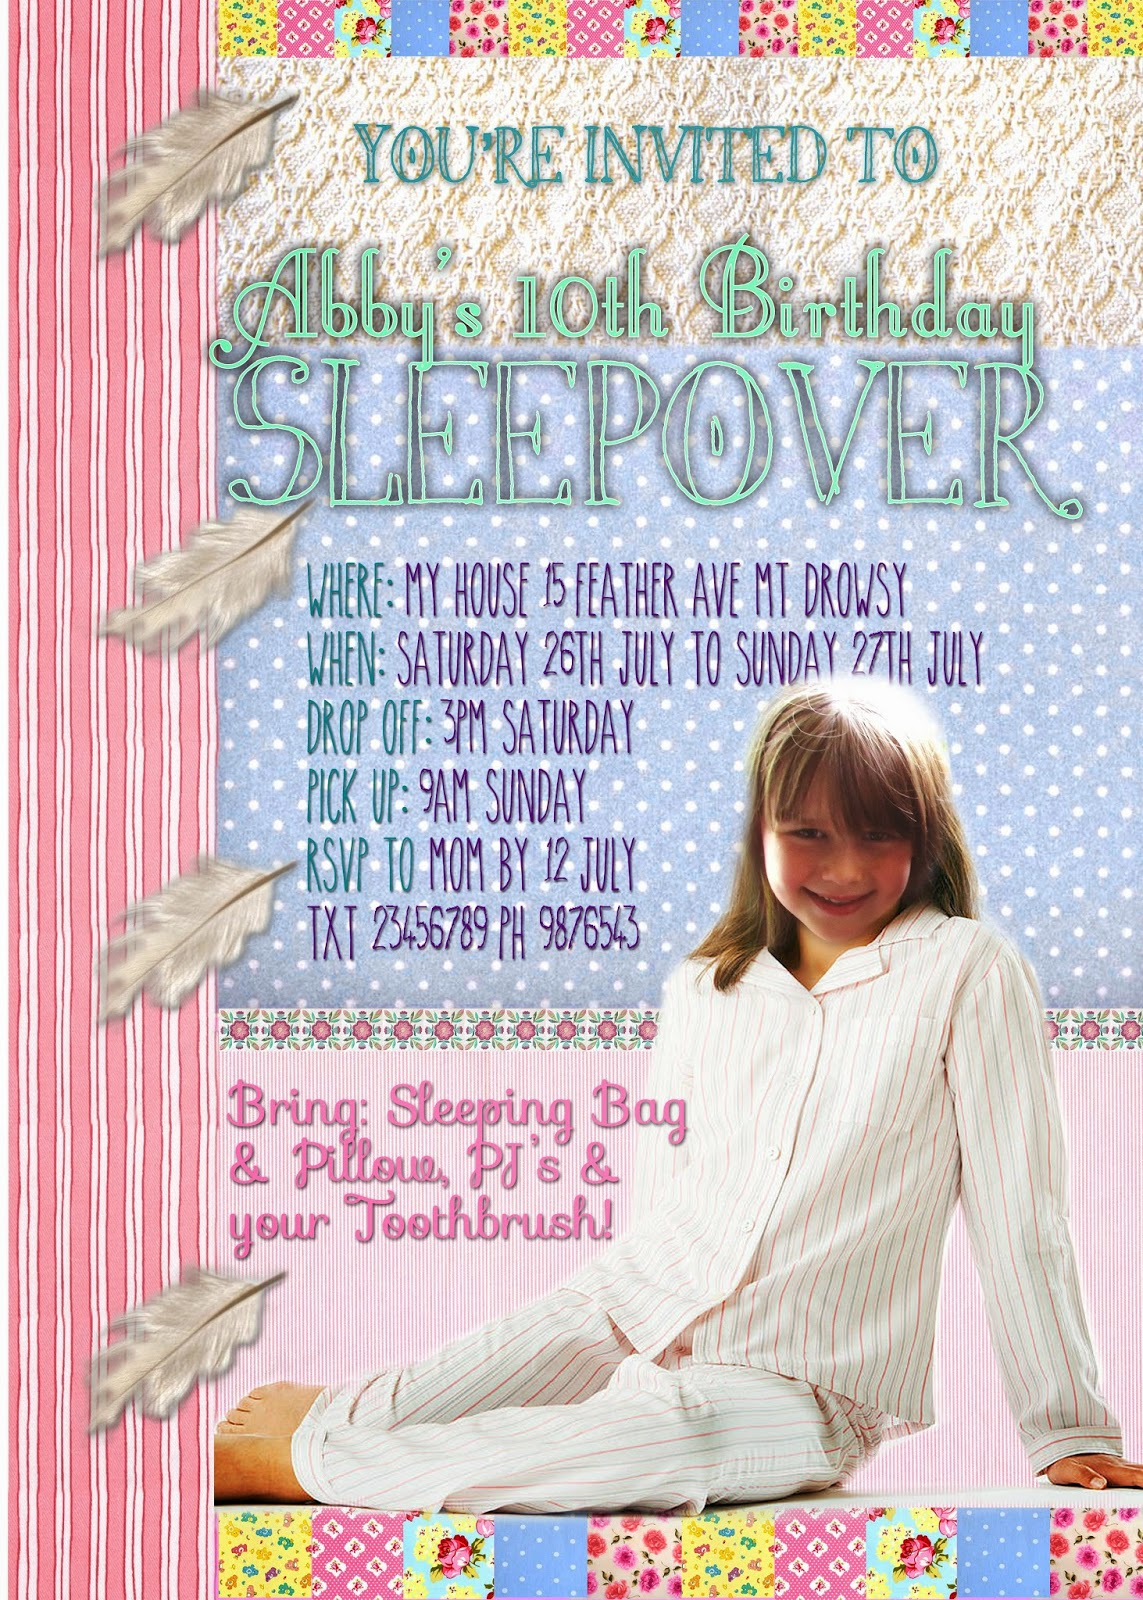 FREE Kids Party Invitations: Pyjama Party Invitation